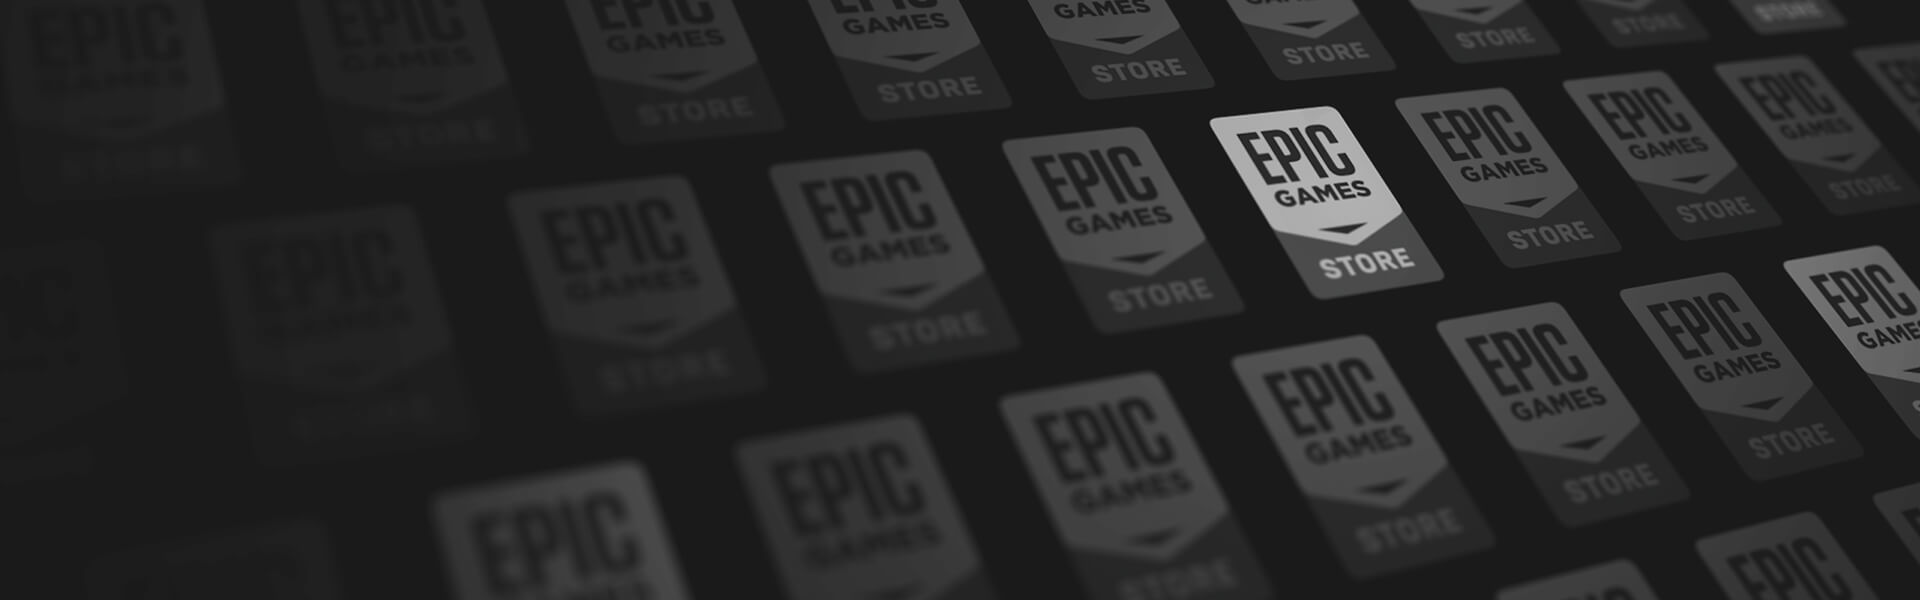 How much does Epic Games pay for free games?